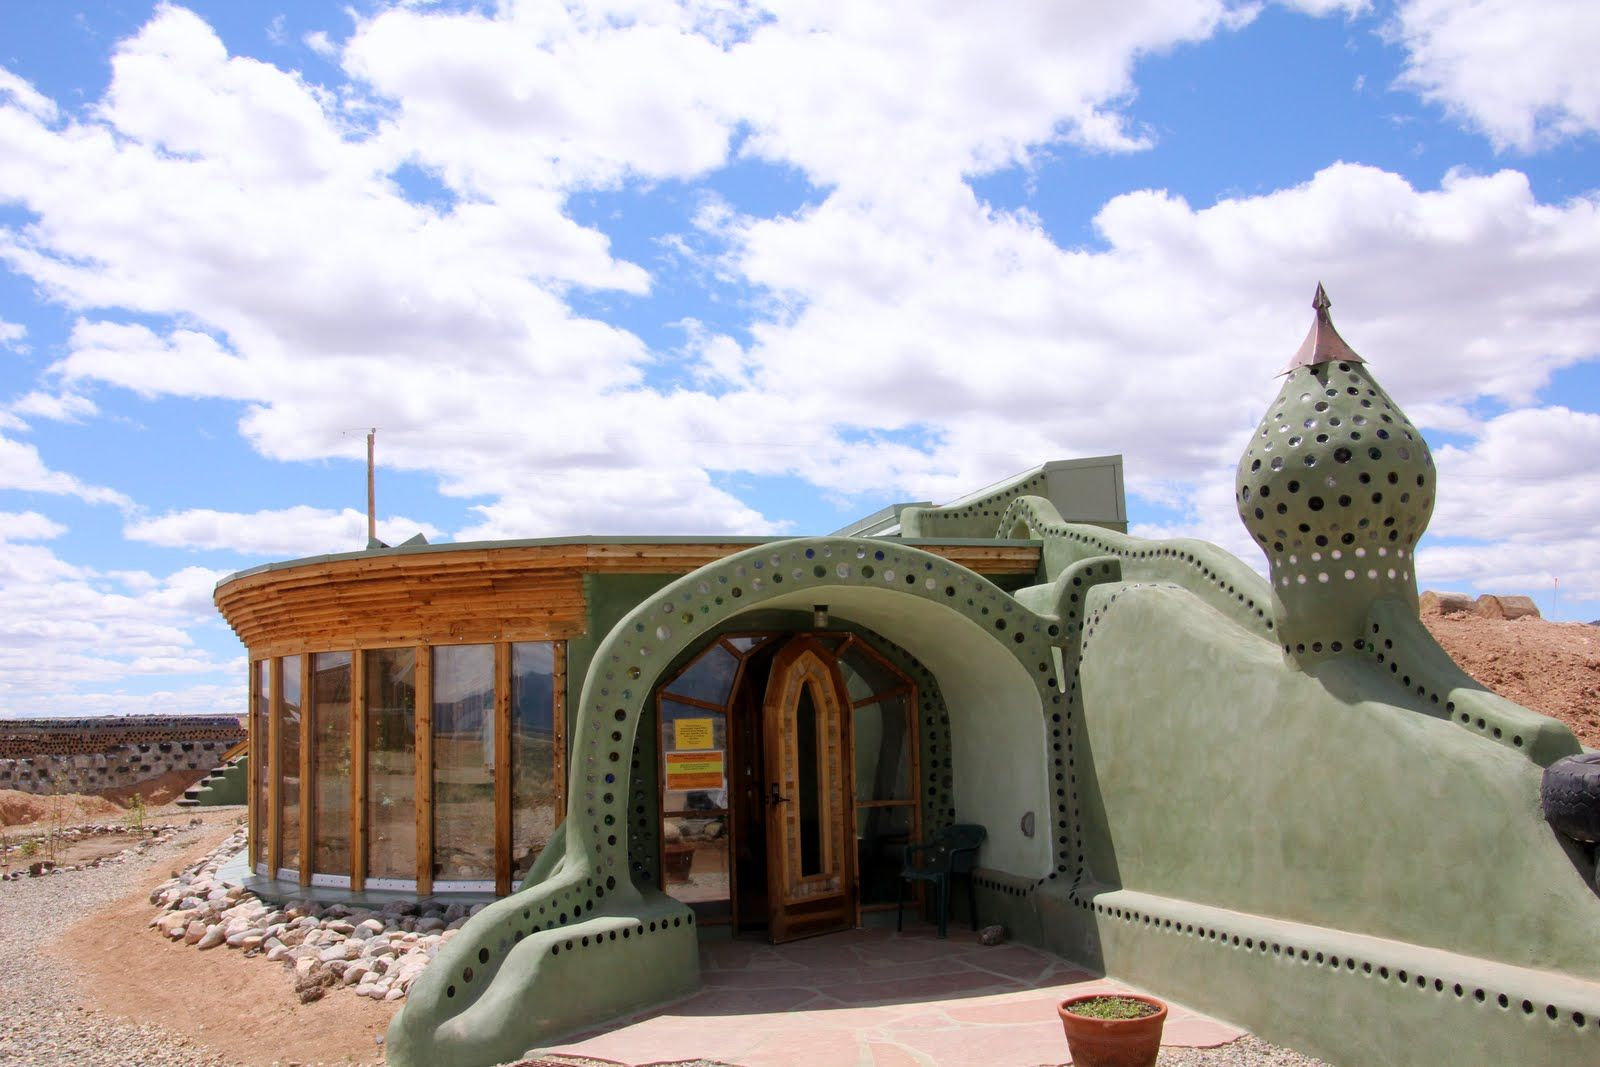 Earthship Homes Designs Free on free trees designs, free architecture designs, free timber frame designs, free green designs, free straw bale house designs, free permaculture designs, free energy designs, free building designs,